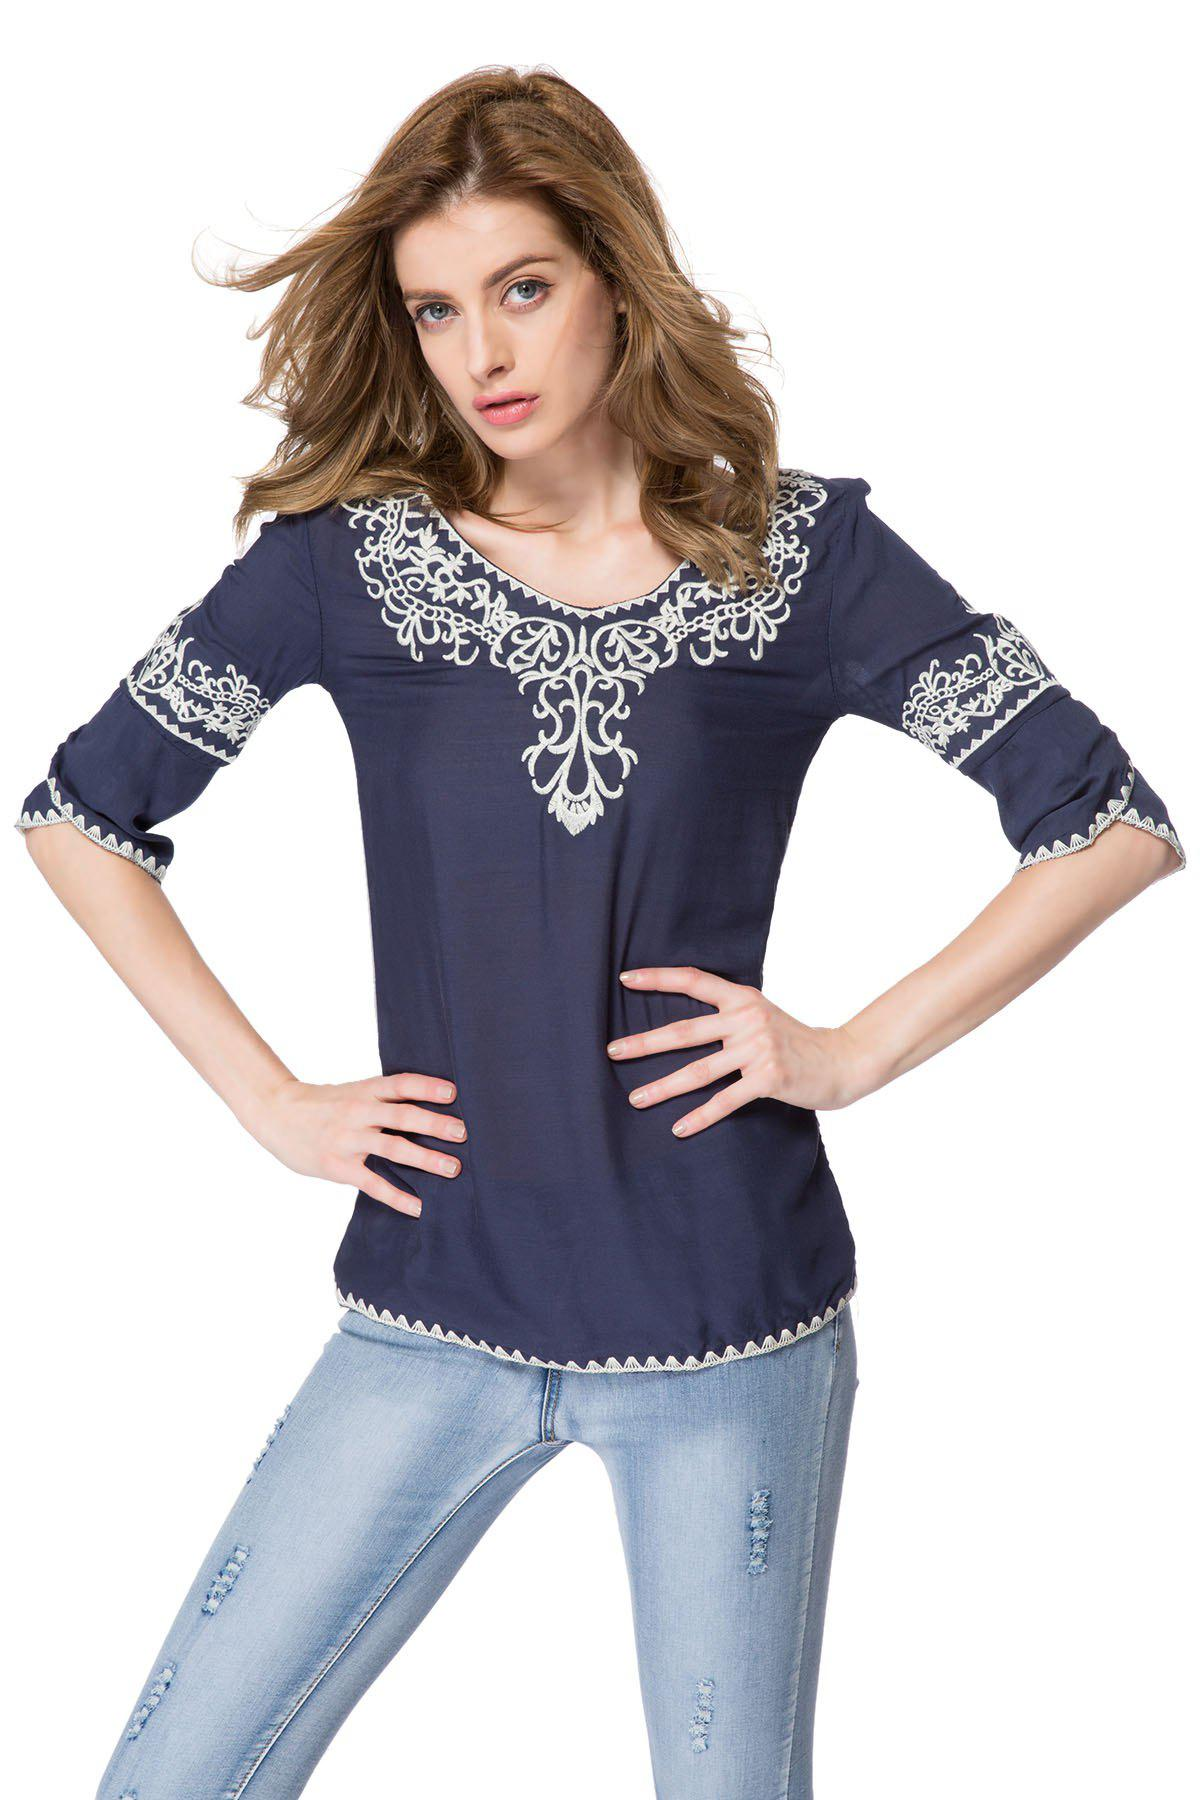 Women's Cotton Color Matching Ethnic Totem Pattern Embroidered Bordered Stylish Blouse - DEEP BLUE ONE SIZE